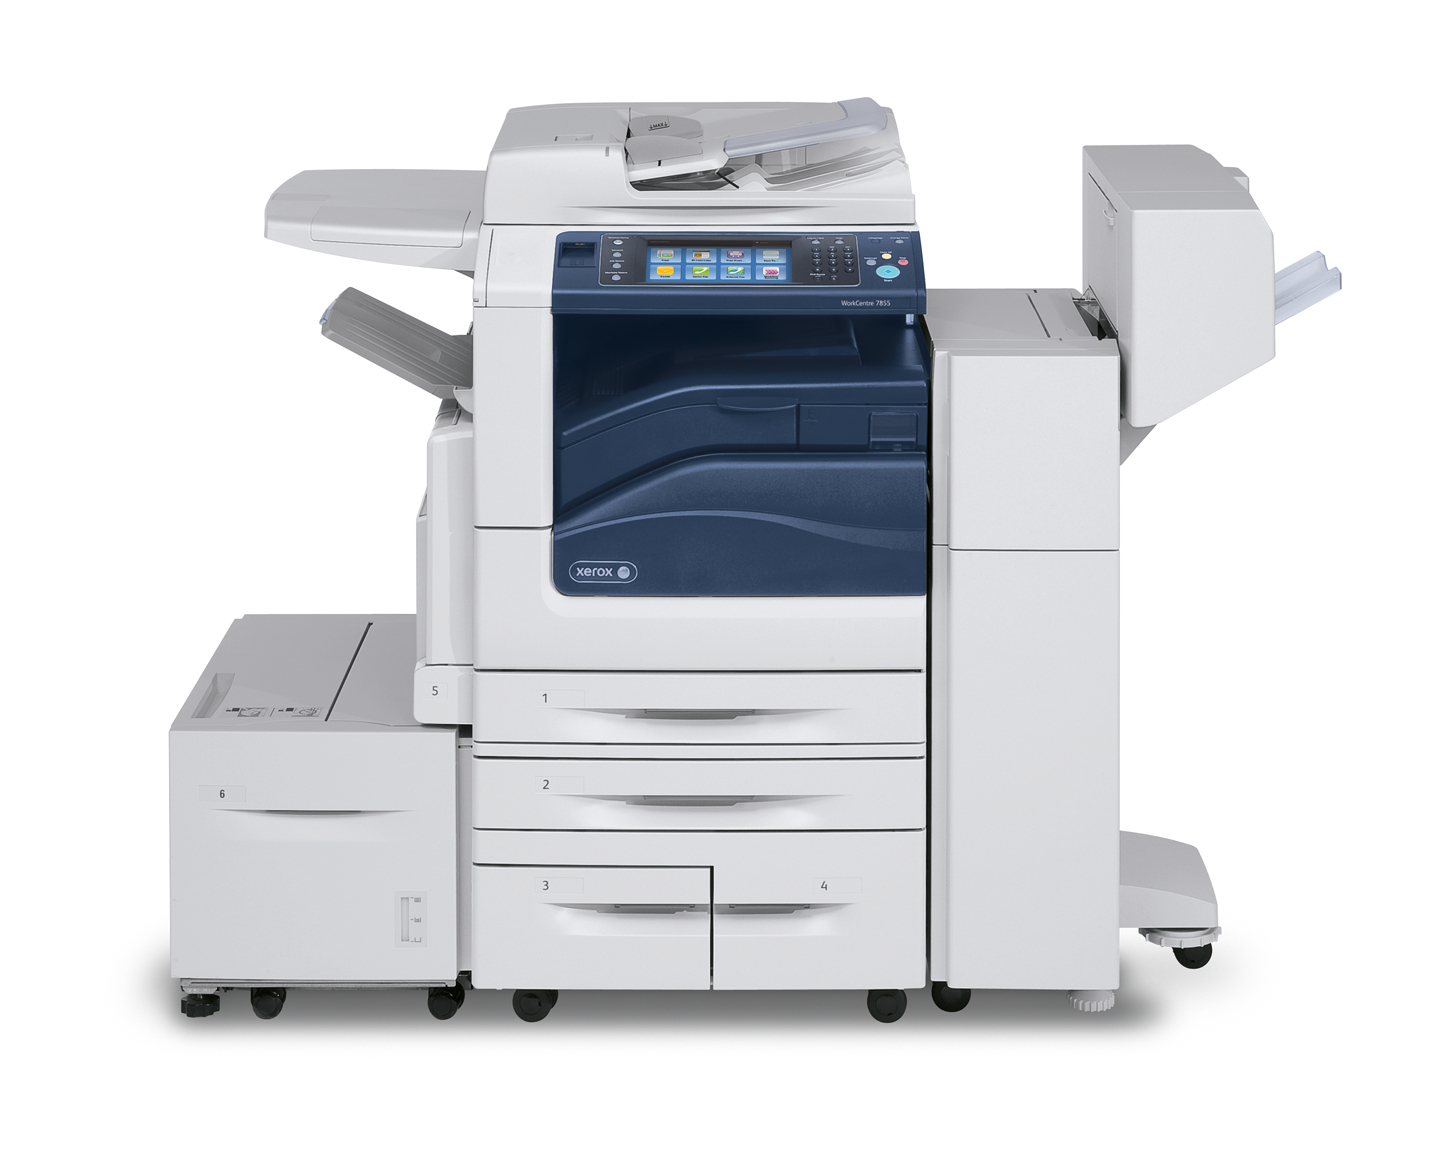 Xerox Work Centre 7830 - 53 000 грн. з ПДВ, + подарунок iPad 4 Retina display WI-FI